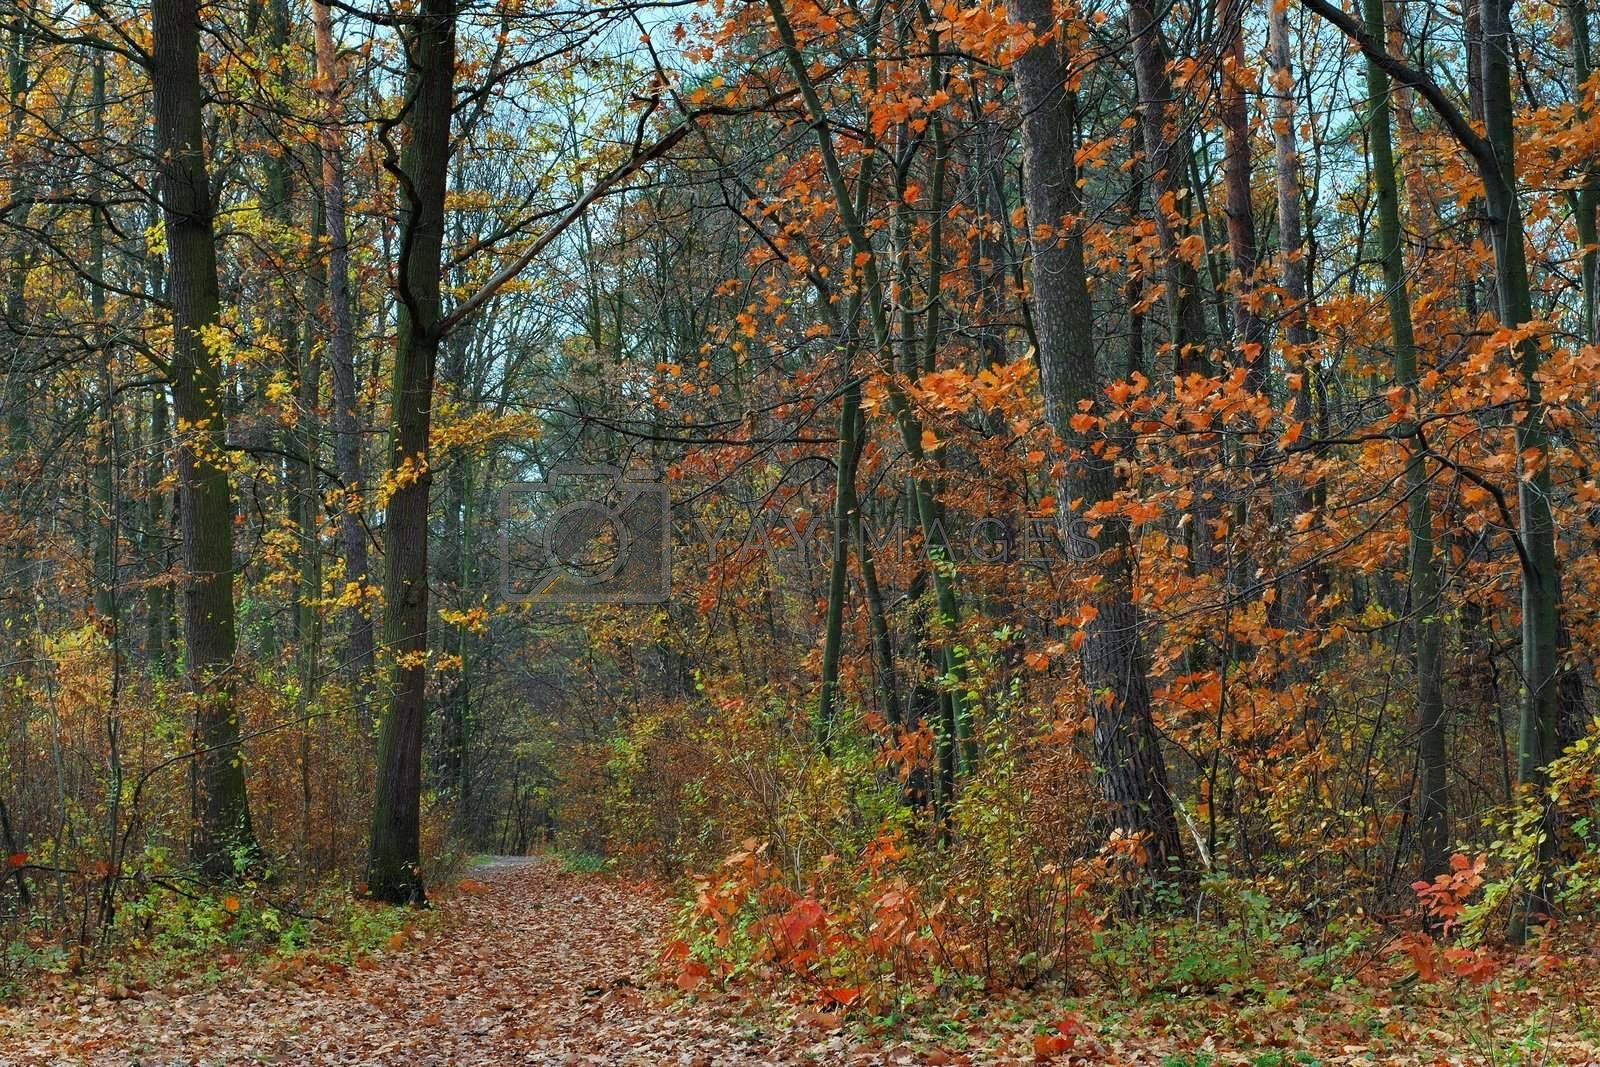 Fall in forest